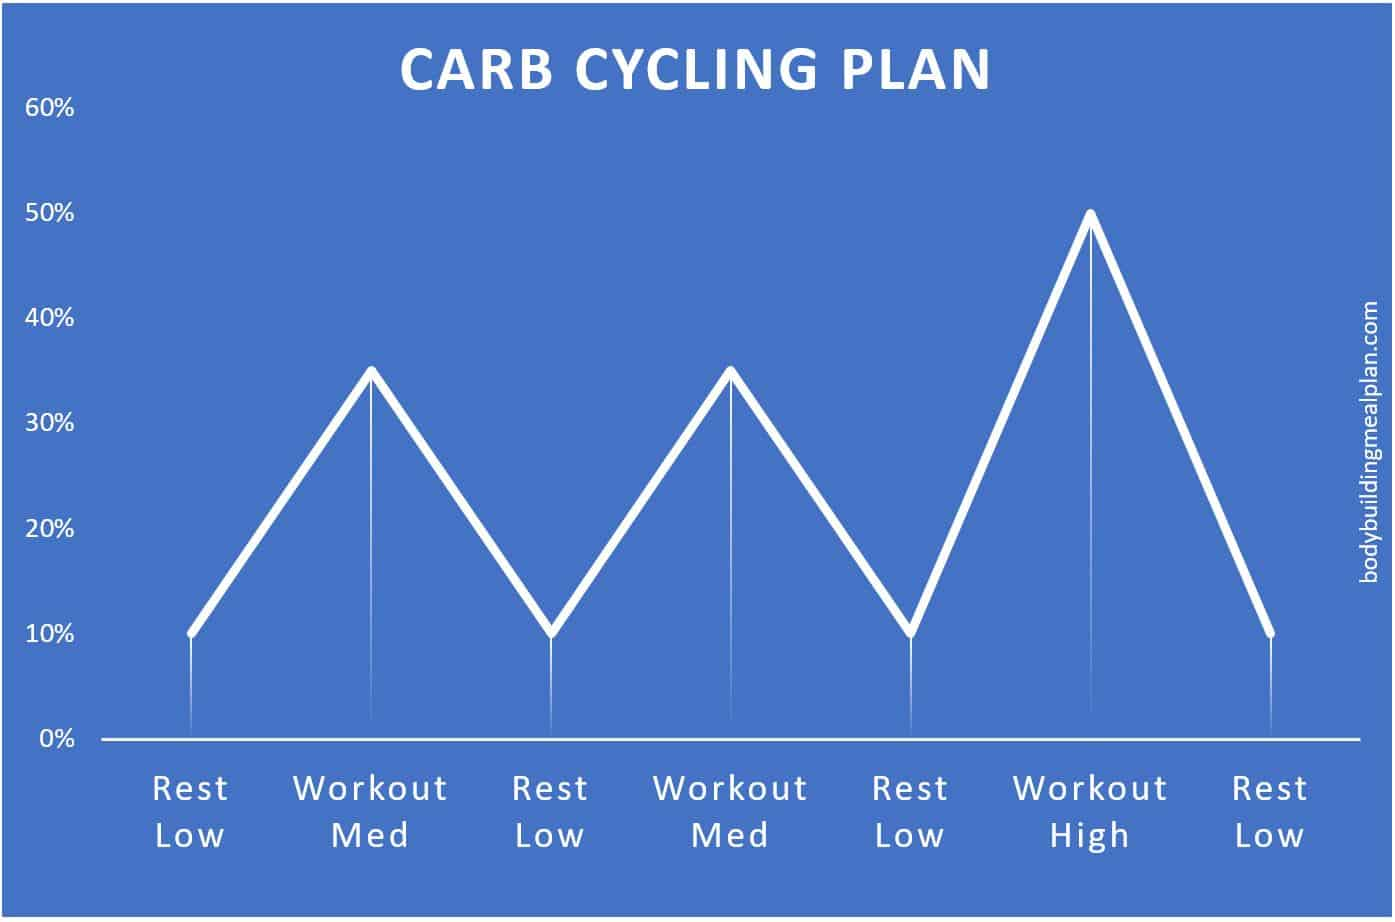 carb cycling plan graph